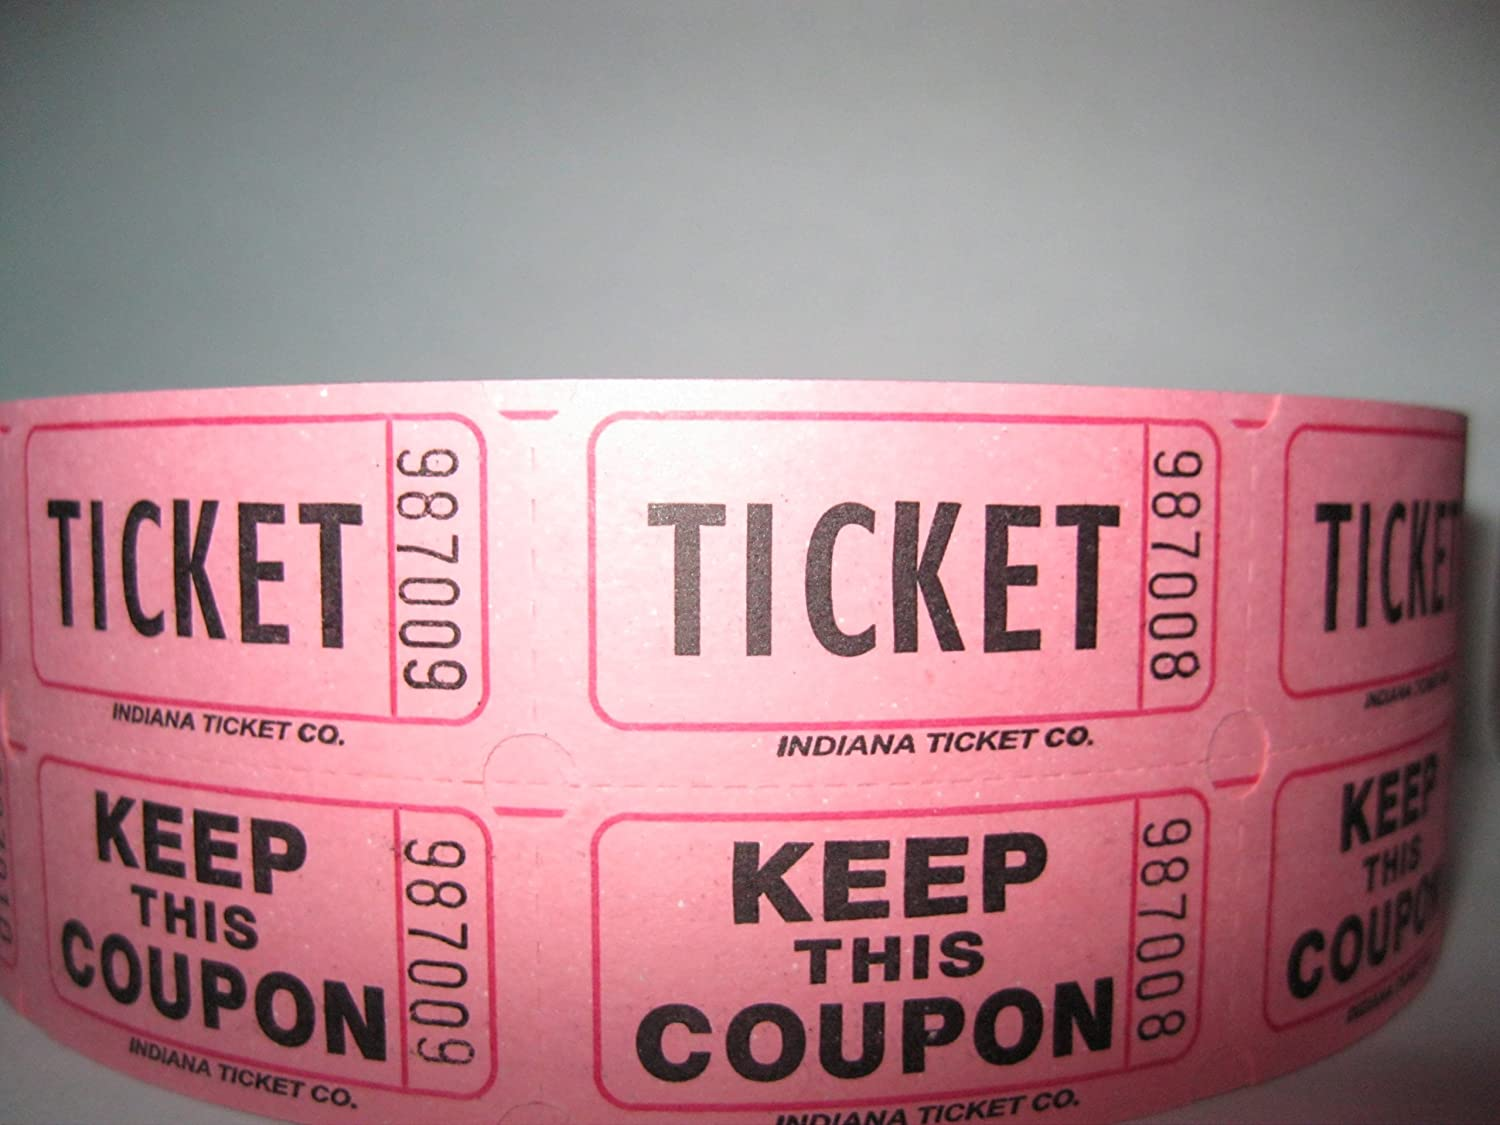 com na ticket company raffle tickets per roll com na ticket company raffle tickets 2000 per roll pink office products